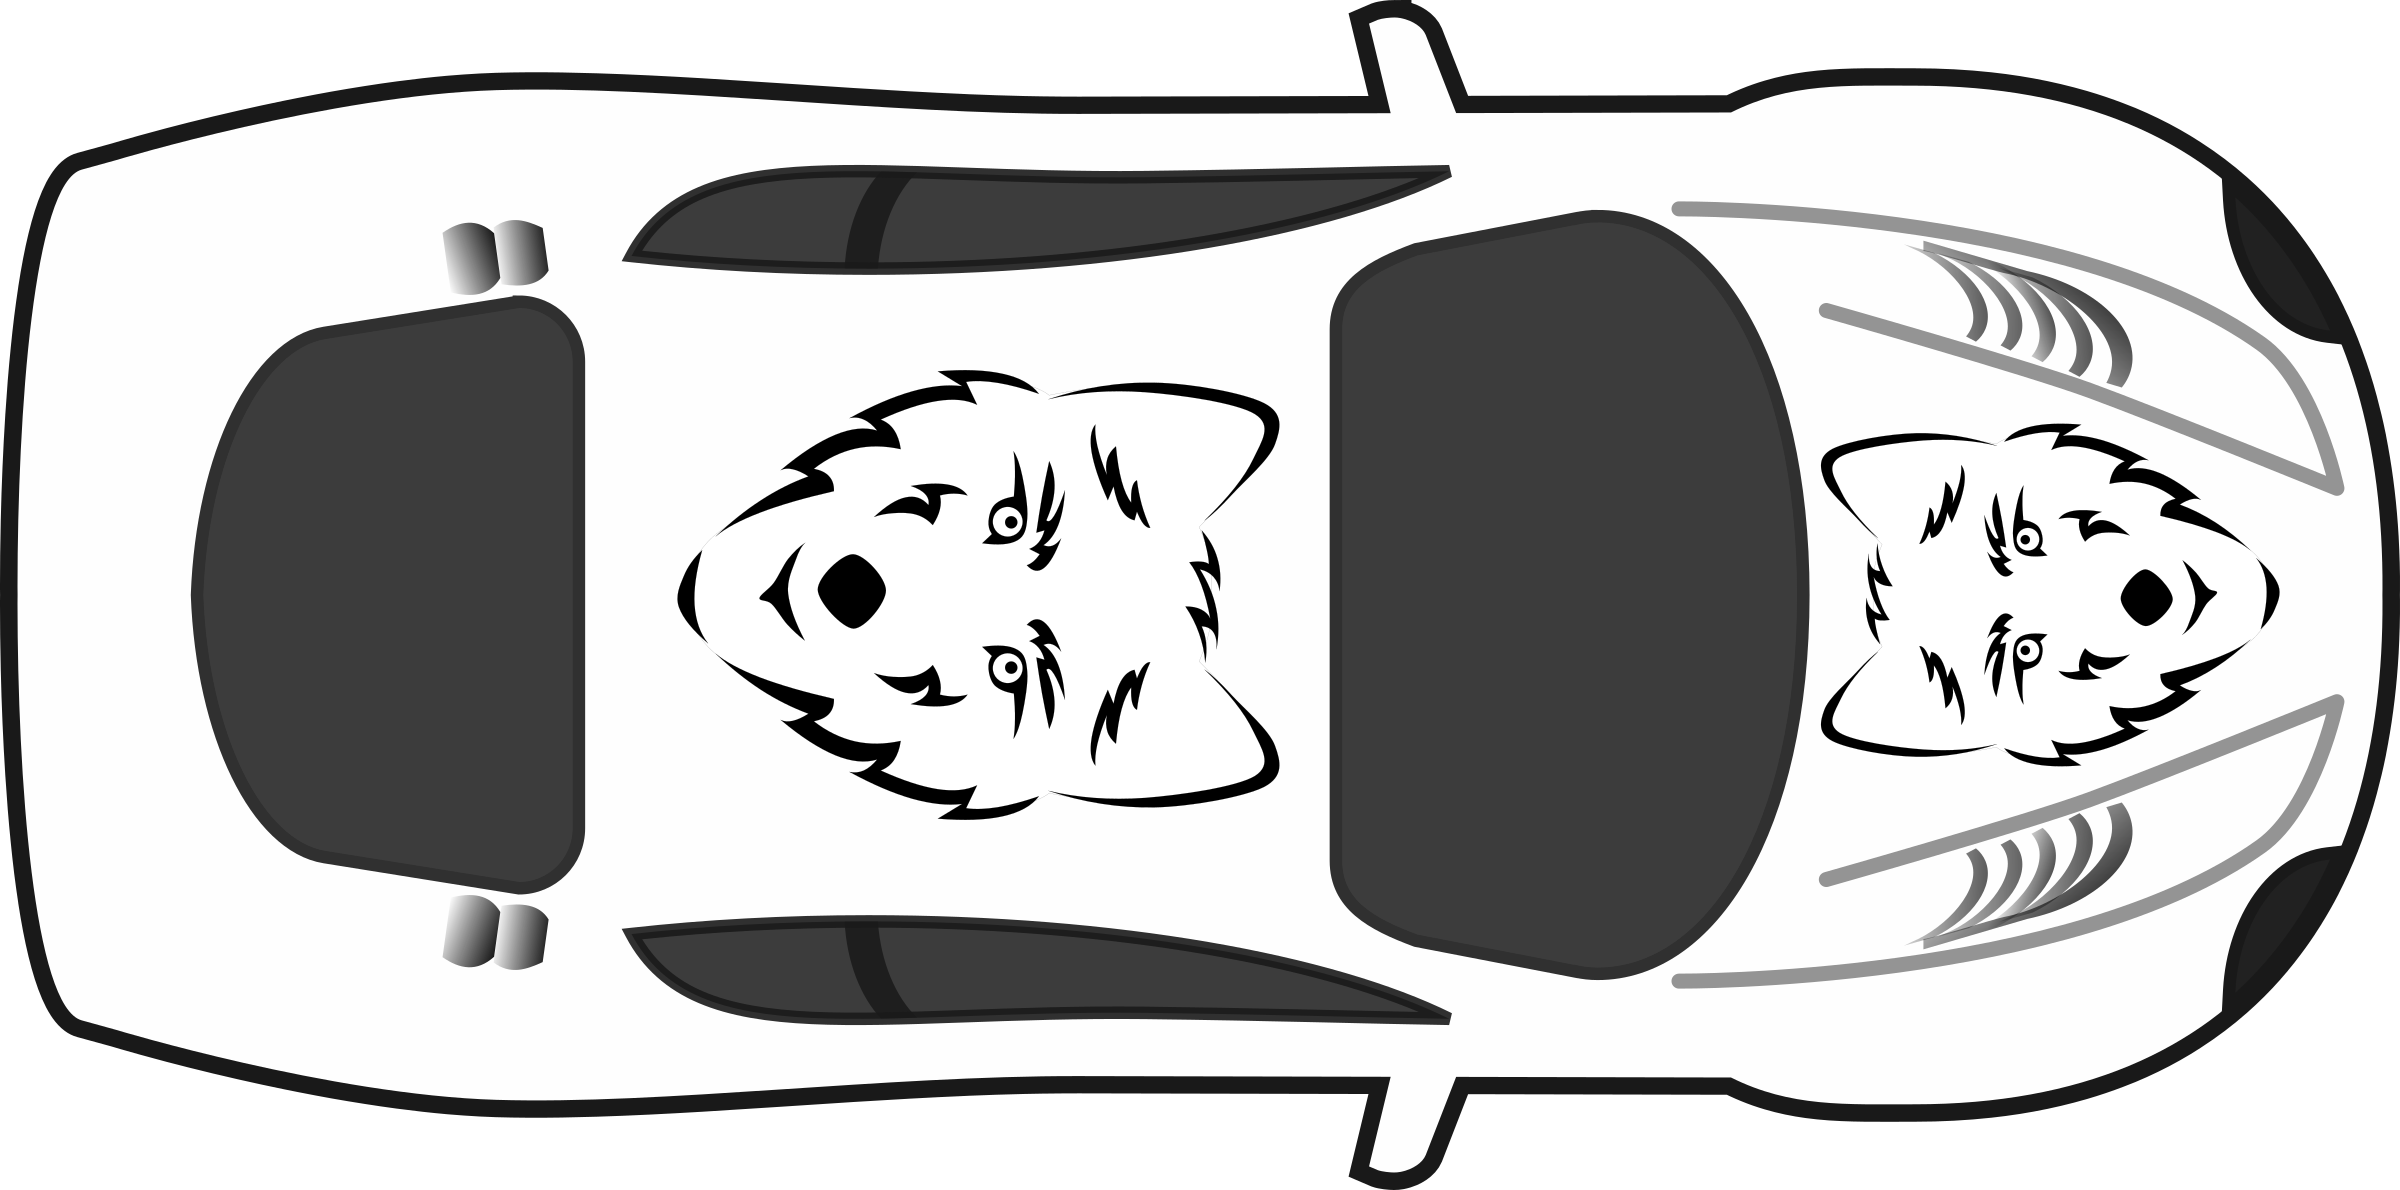 Car with hood open clipart jpg transparent library Clipart - Wolf Paint Job on Car Top View jpg transparent library